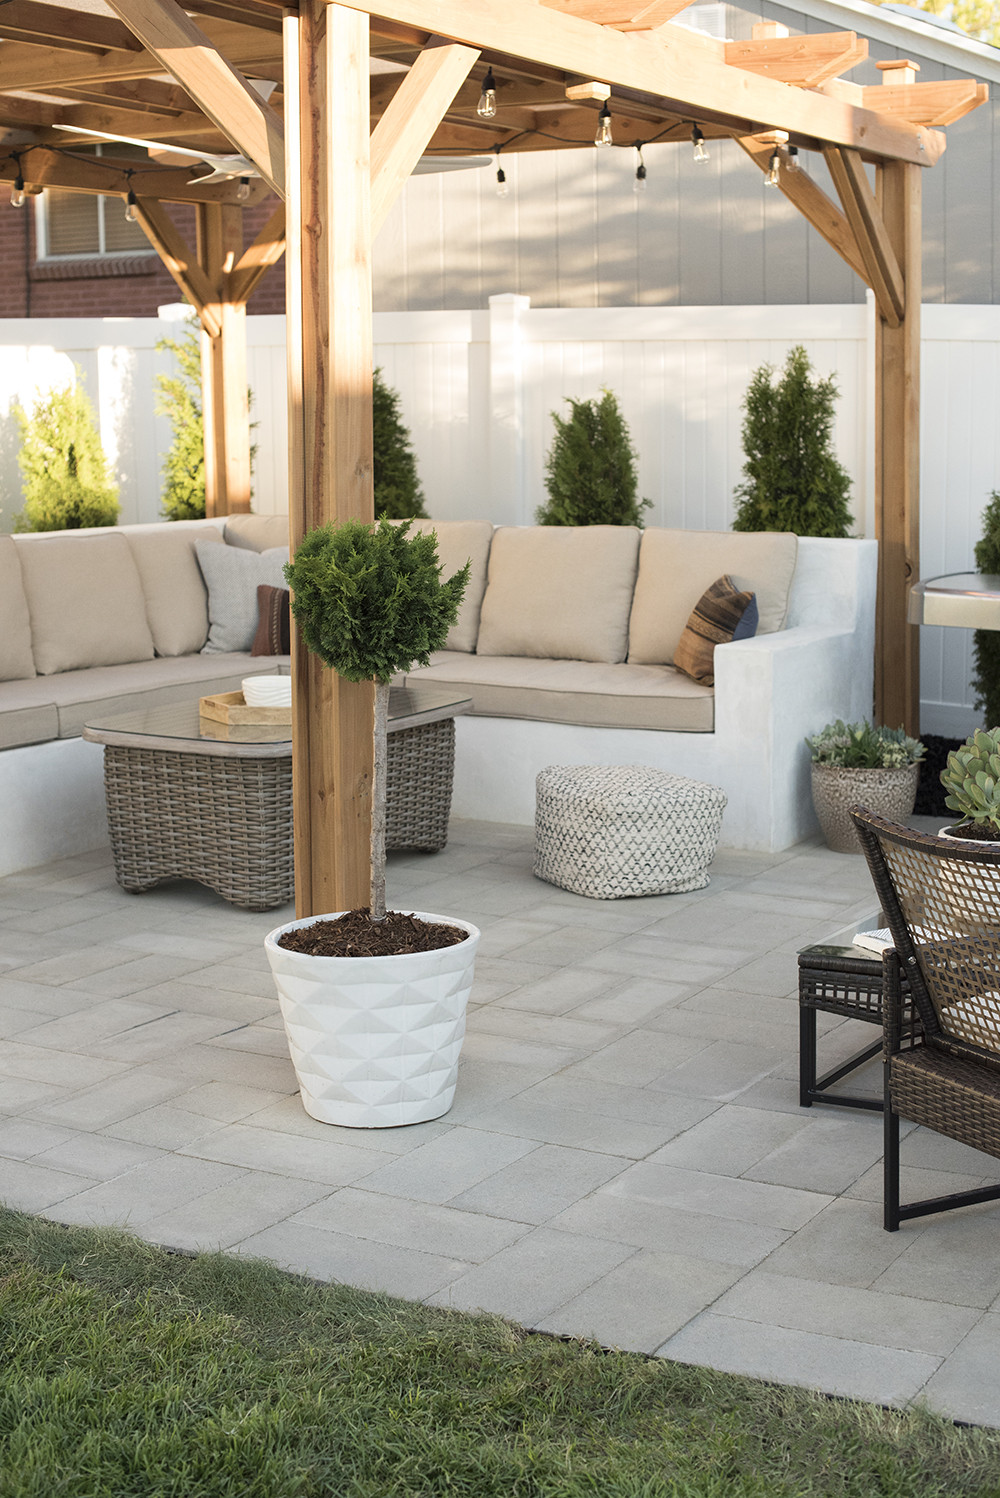 Best ideas about DIY Outdoor Patios . Save or Pin How to Install A Custom Paver Patio Room for Tuesday Blog Now.